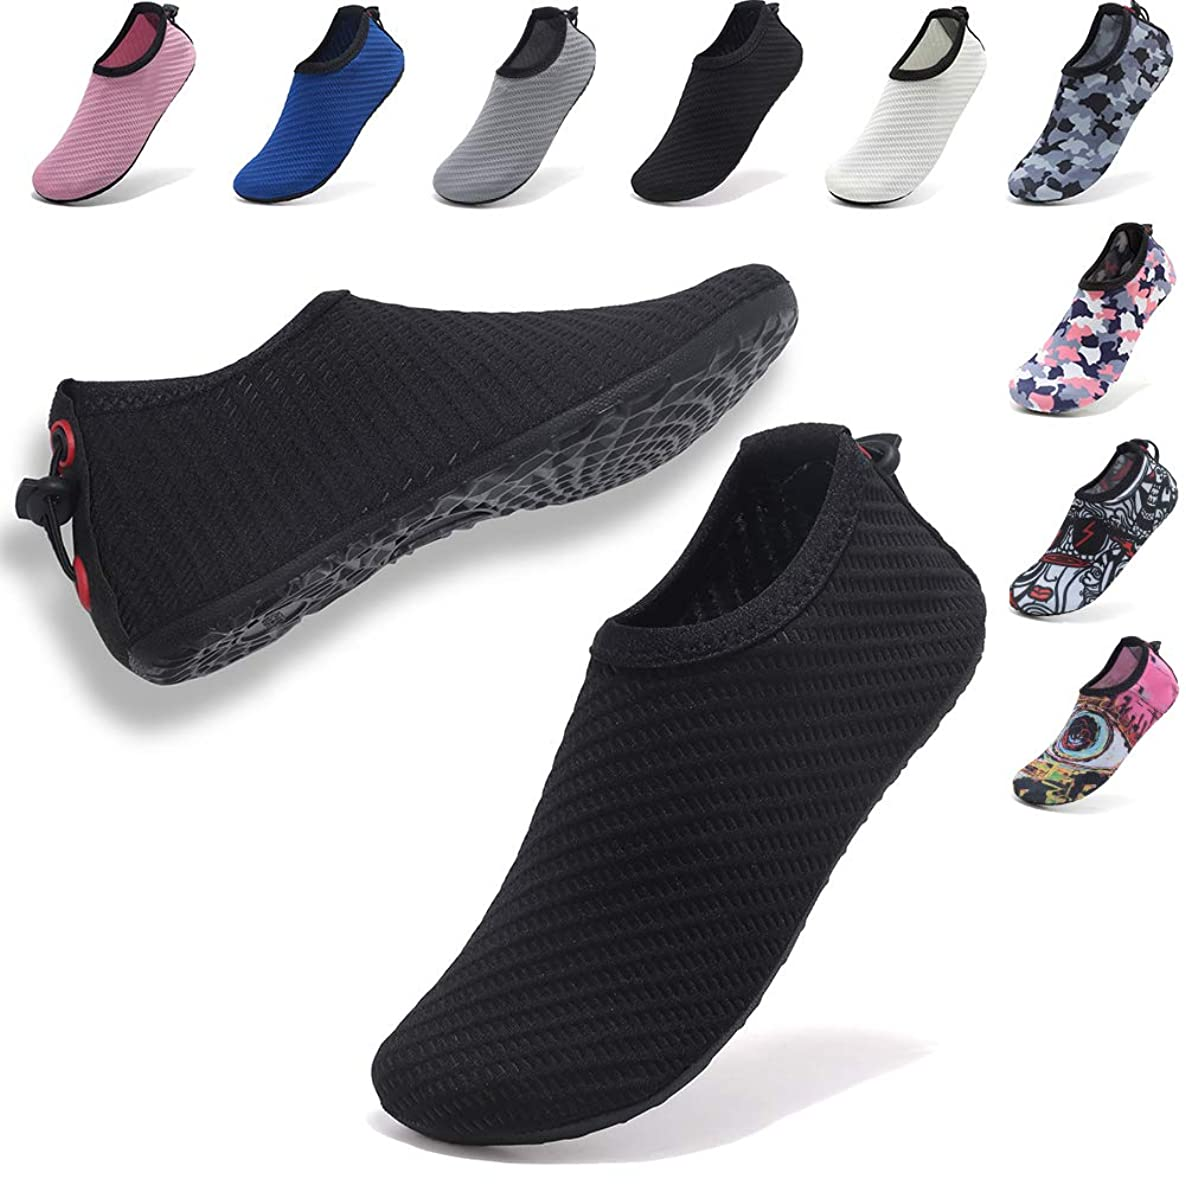 VIFUUR Womens Mens Water Sport Shoes Adjustable Aqua Socks Surf Beach Pool Shoes with Elastic ldrqkaexwndtfwwk